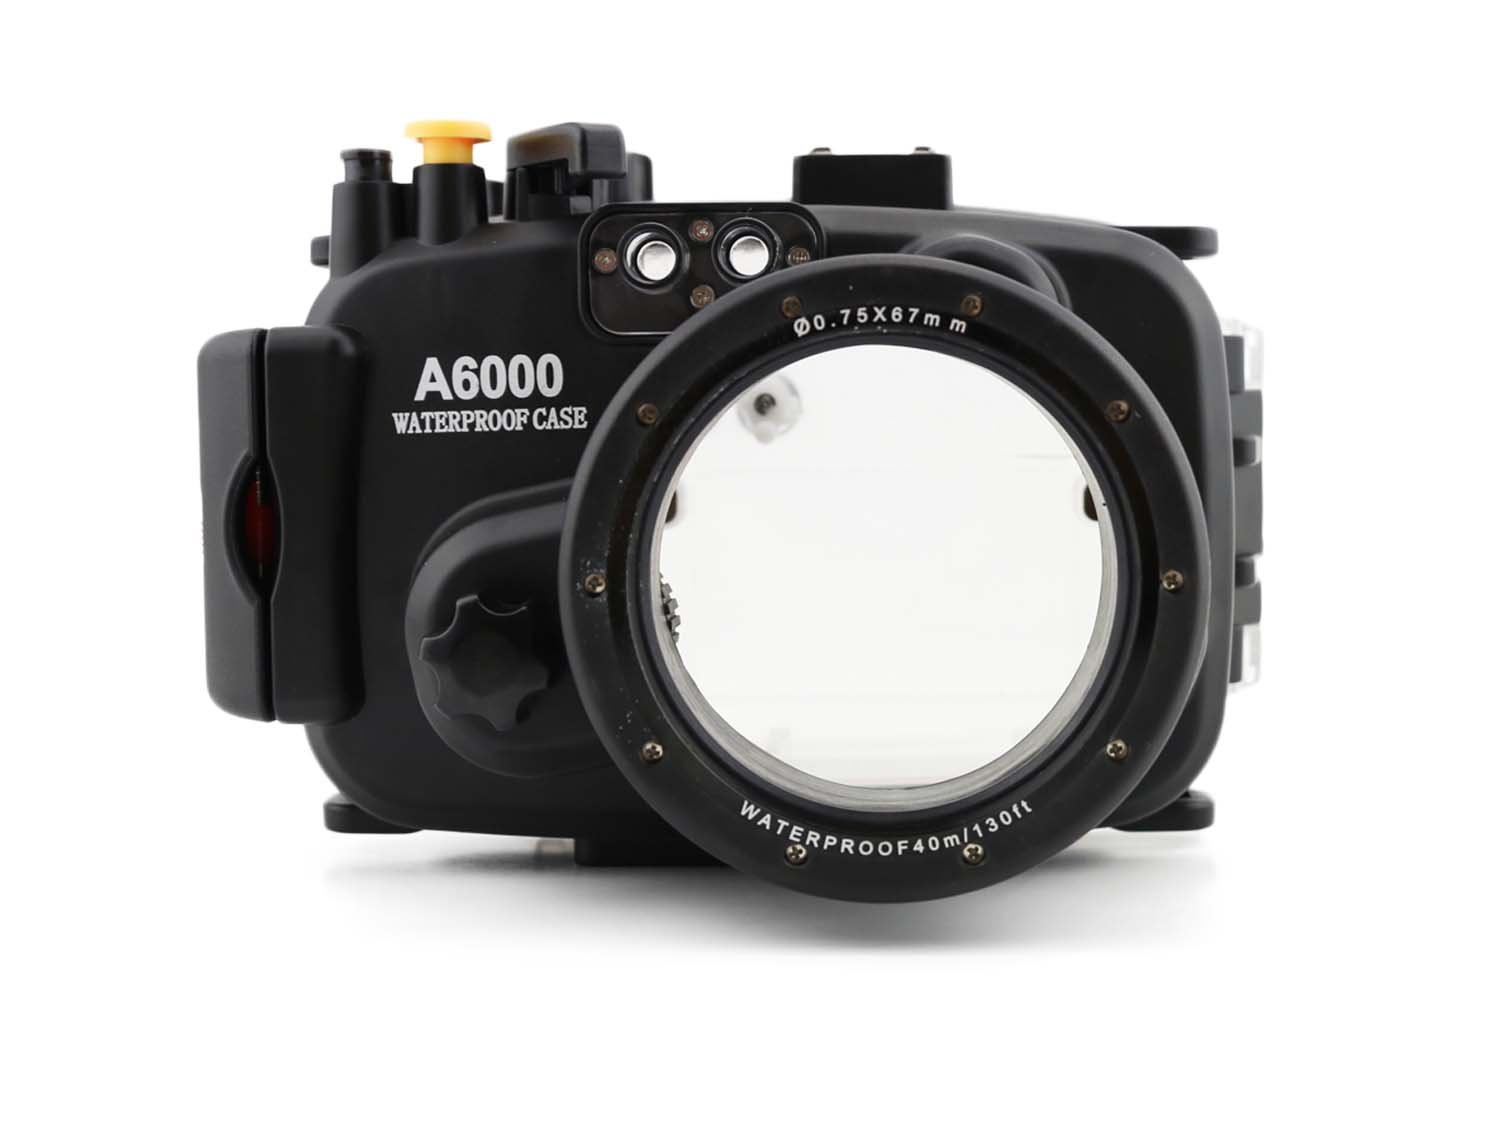 CameraPlus - High Performance Underwater Case Camera Housing Diving For SONY A6000 Up To 40 Meters(130ft.)